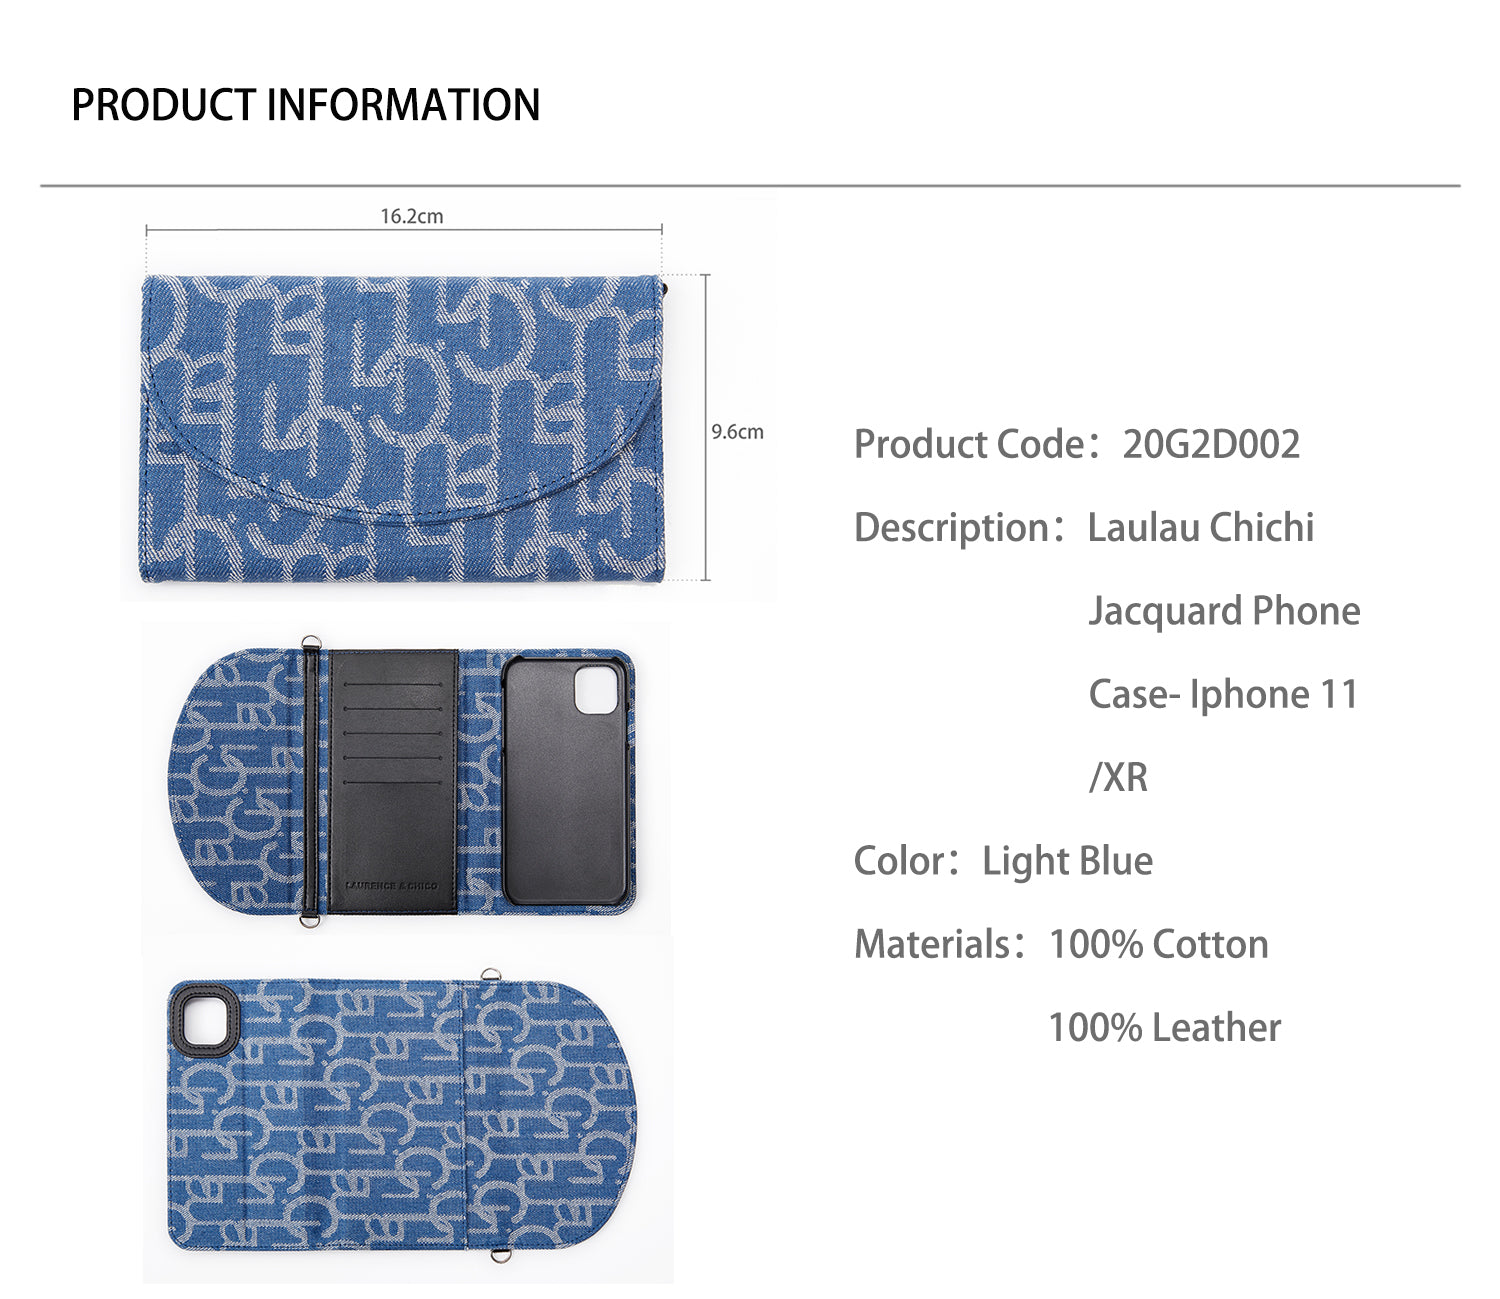 Laulau Chichi Jacquard Phone Case